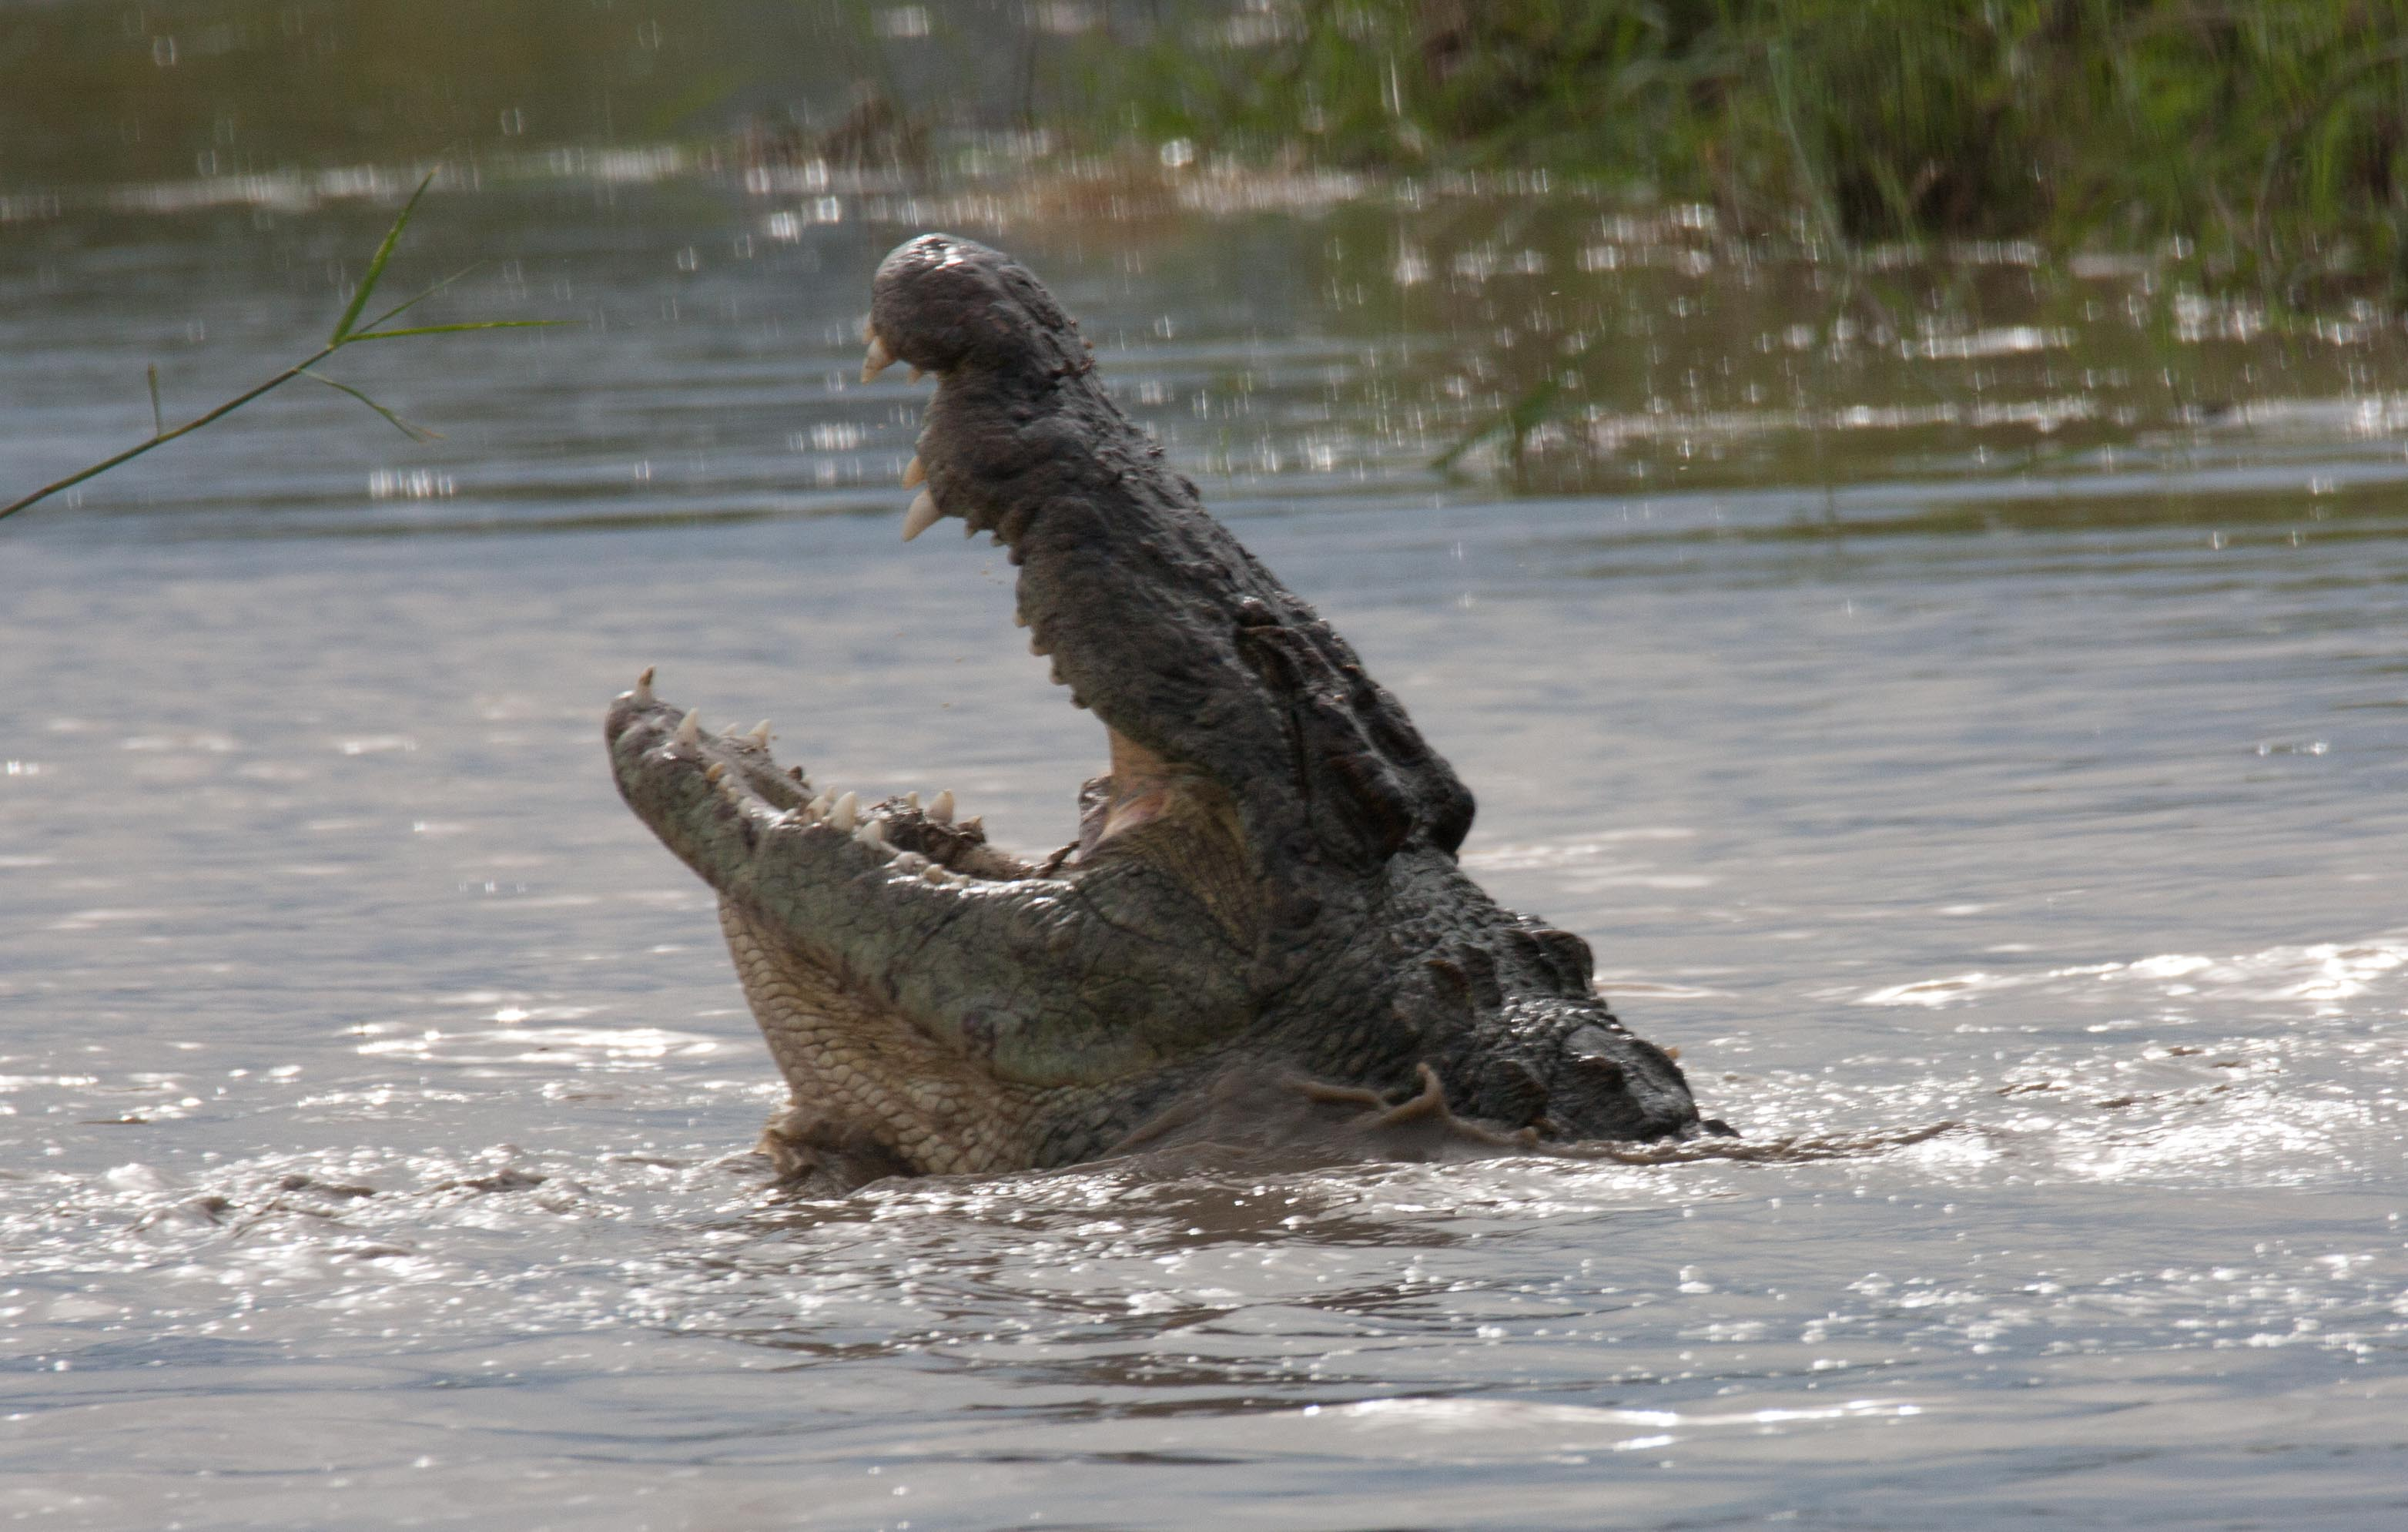 Crocs can't chew their food. Instead they bite off manageable bite and swallow them whole.